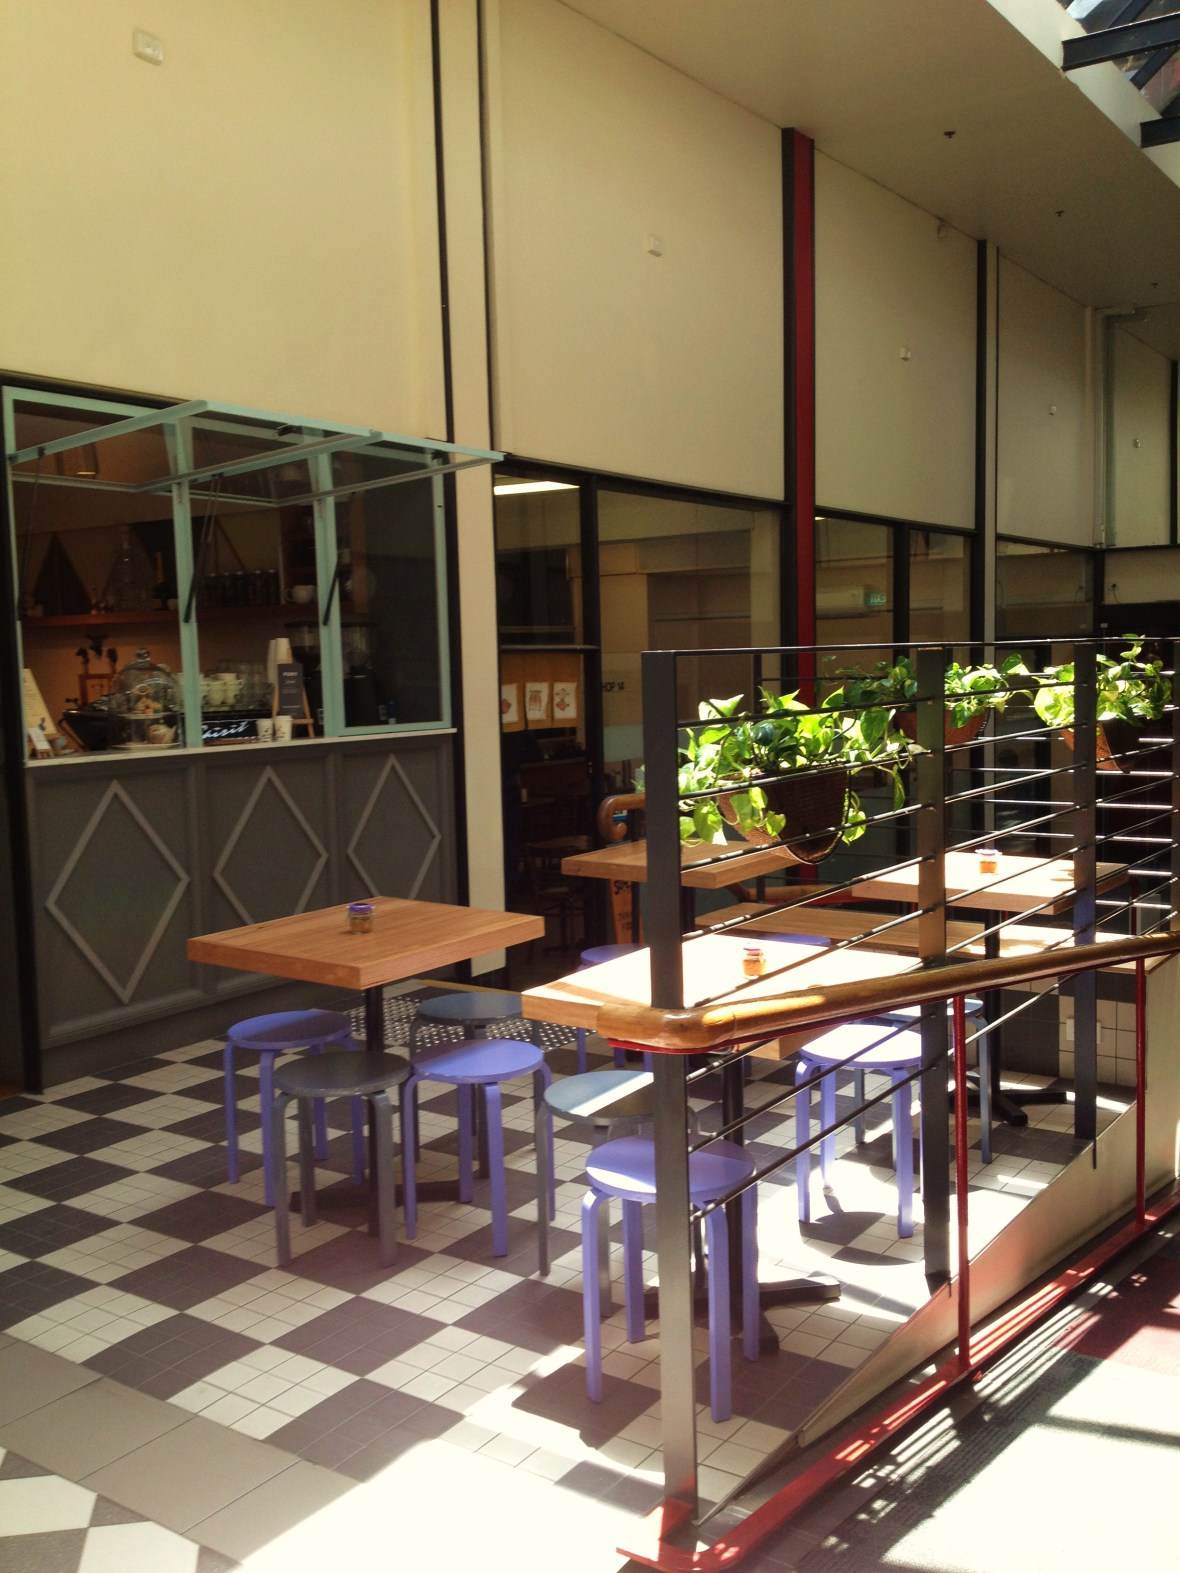 Alice Nivens Cafe - the frontage